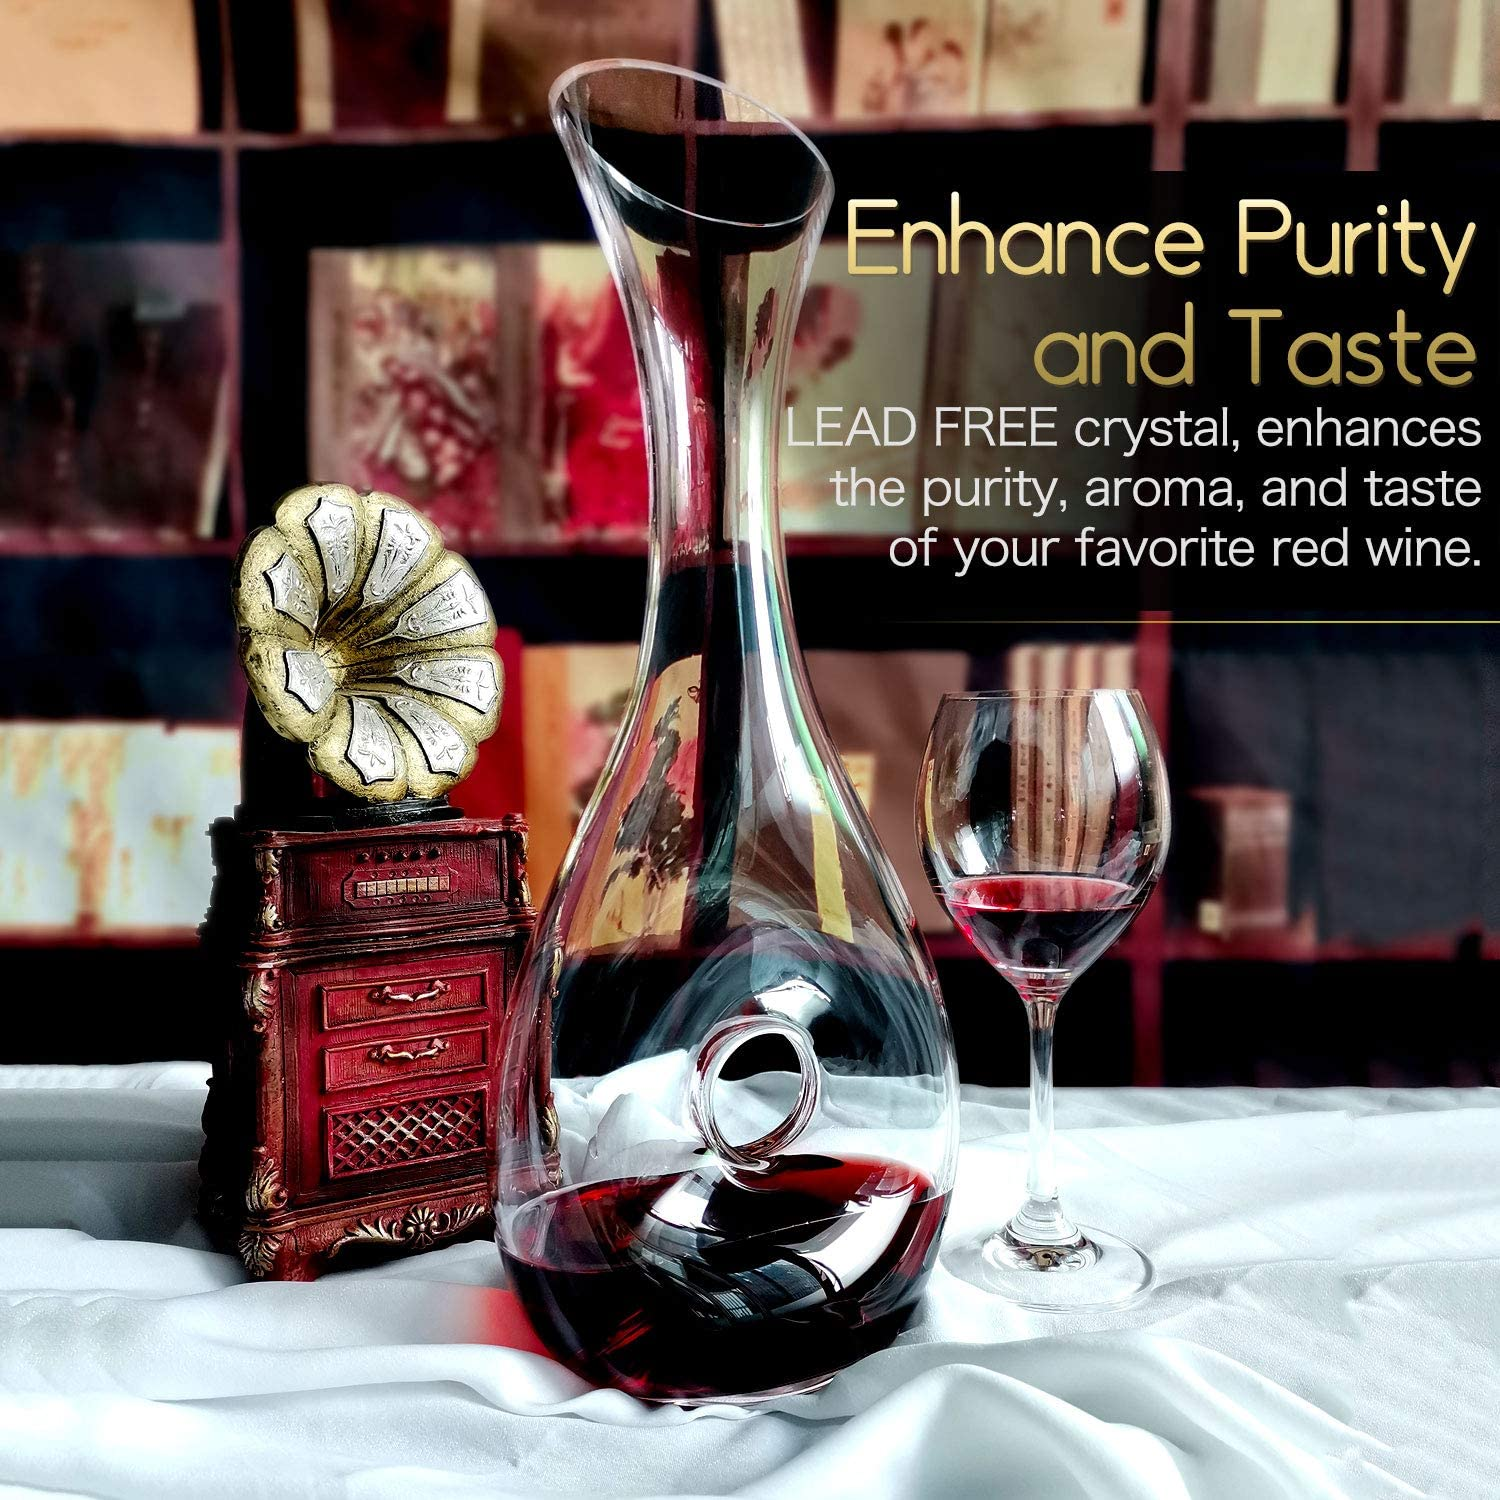 1.2L Clear Decanter Carafe for Wine with Cleaning Brush Hand Blown Lead-Free Crystal Snail Shaped Wine Decanter Accessories Wine Gift Set for Wine Lovers